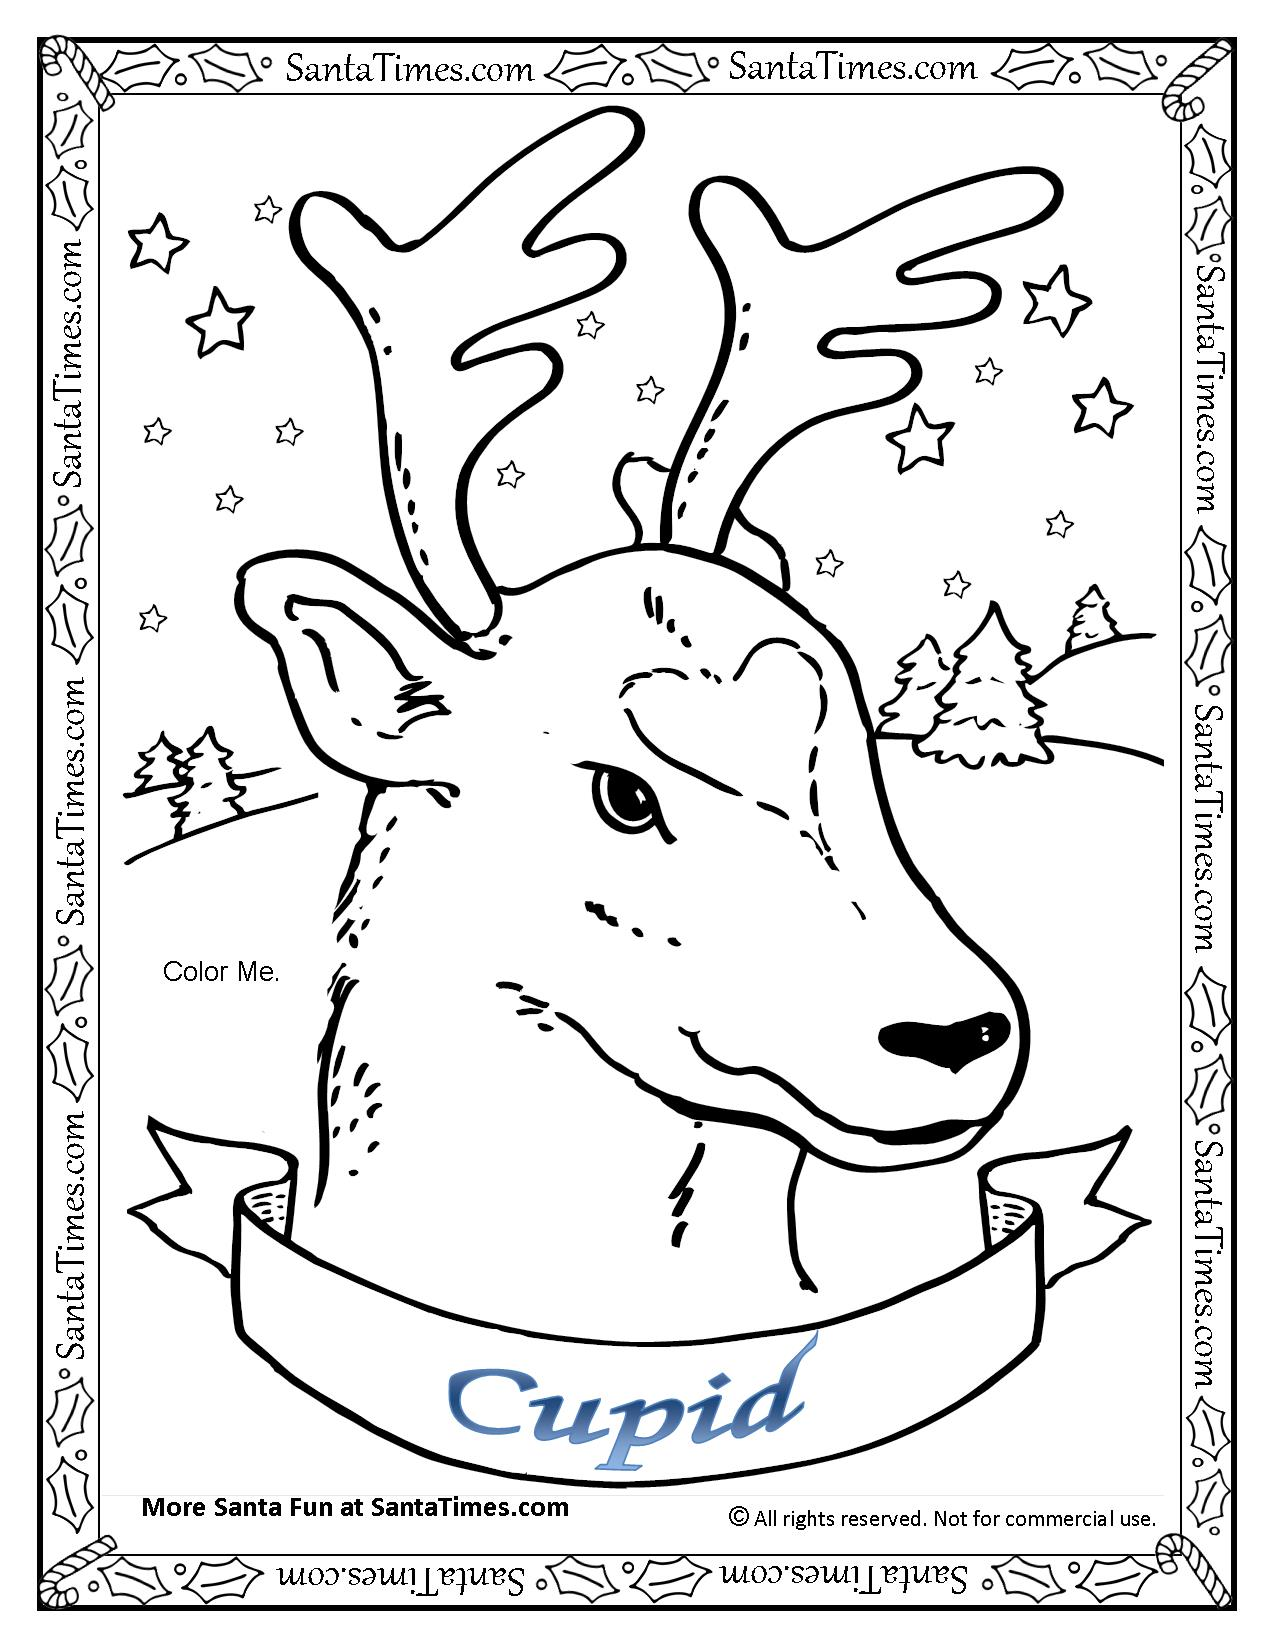 Santa Reindeer Coloring With Cupid The